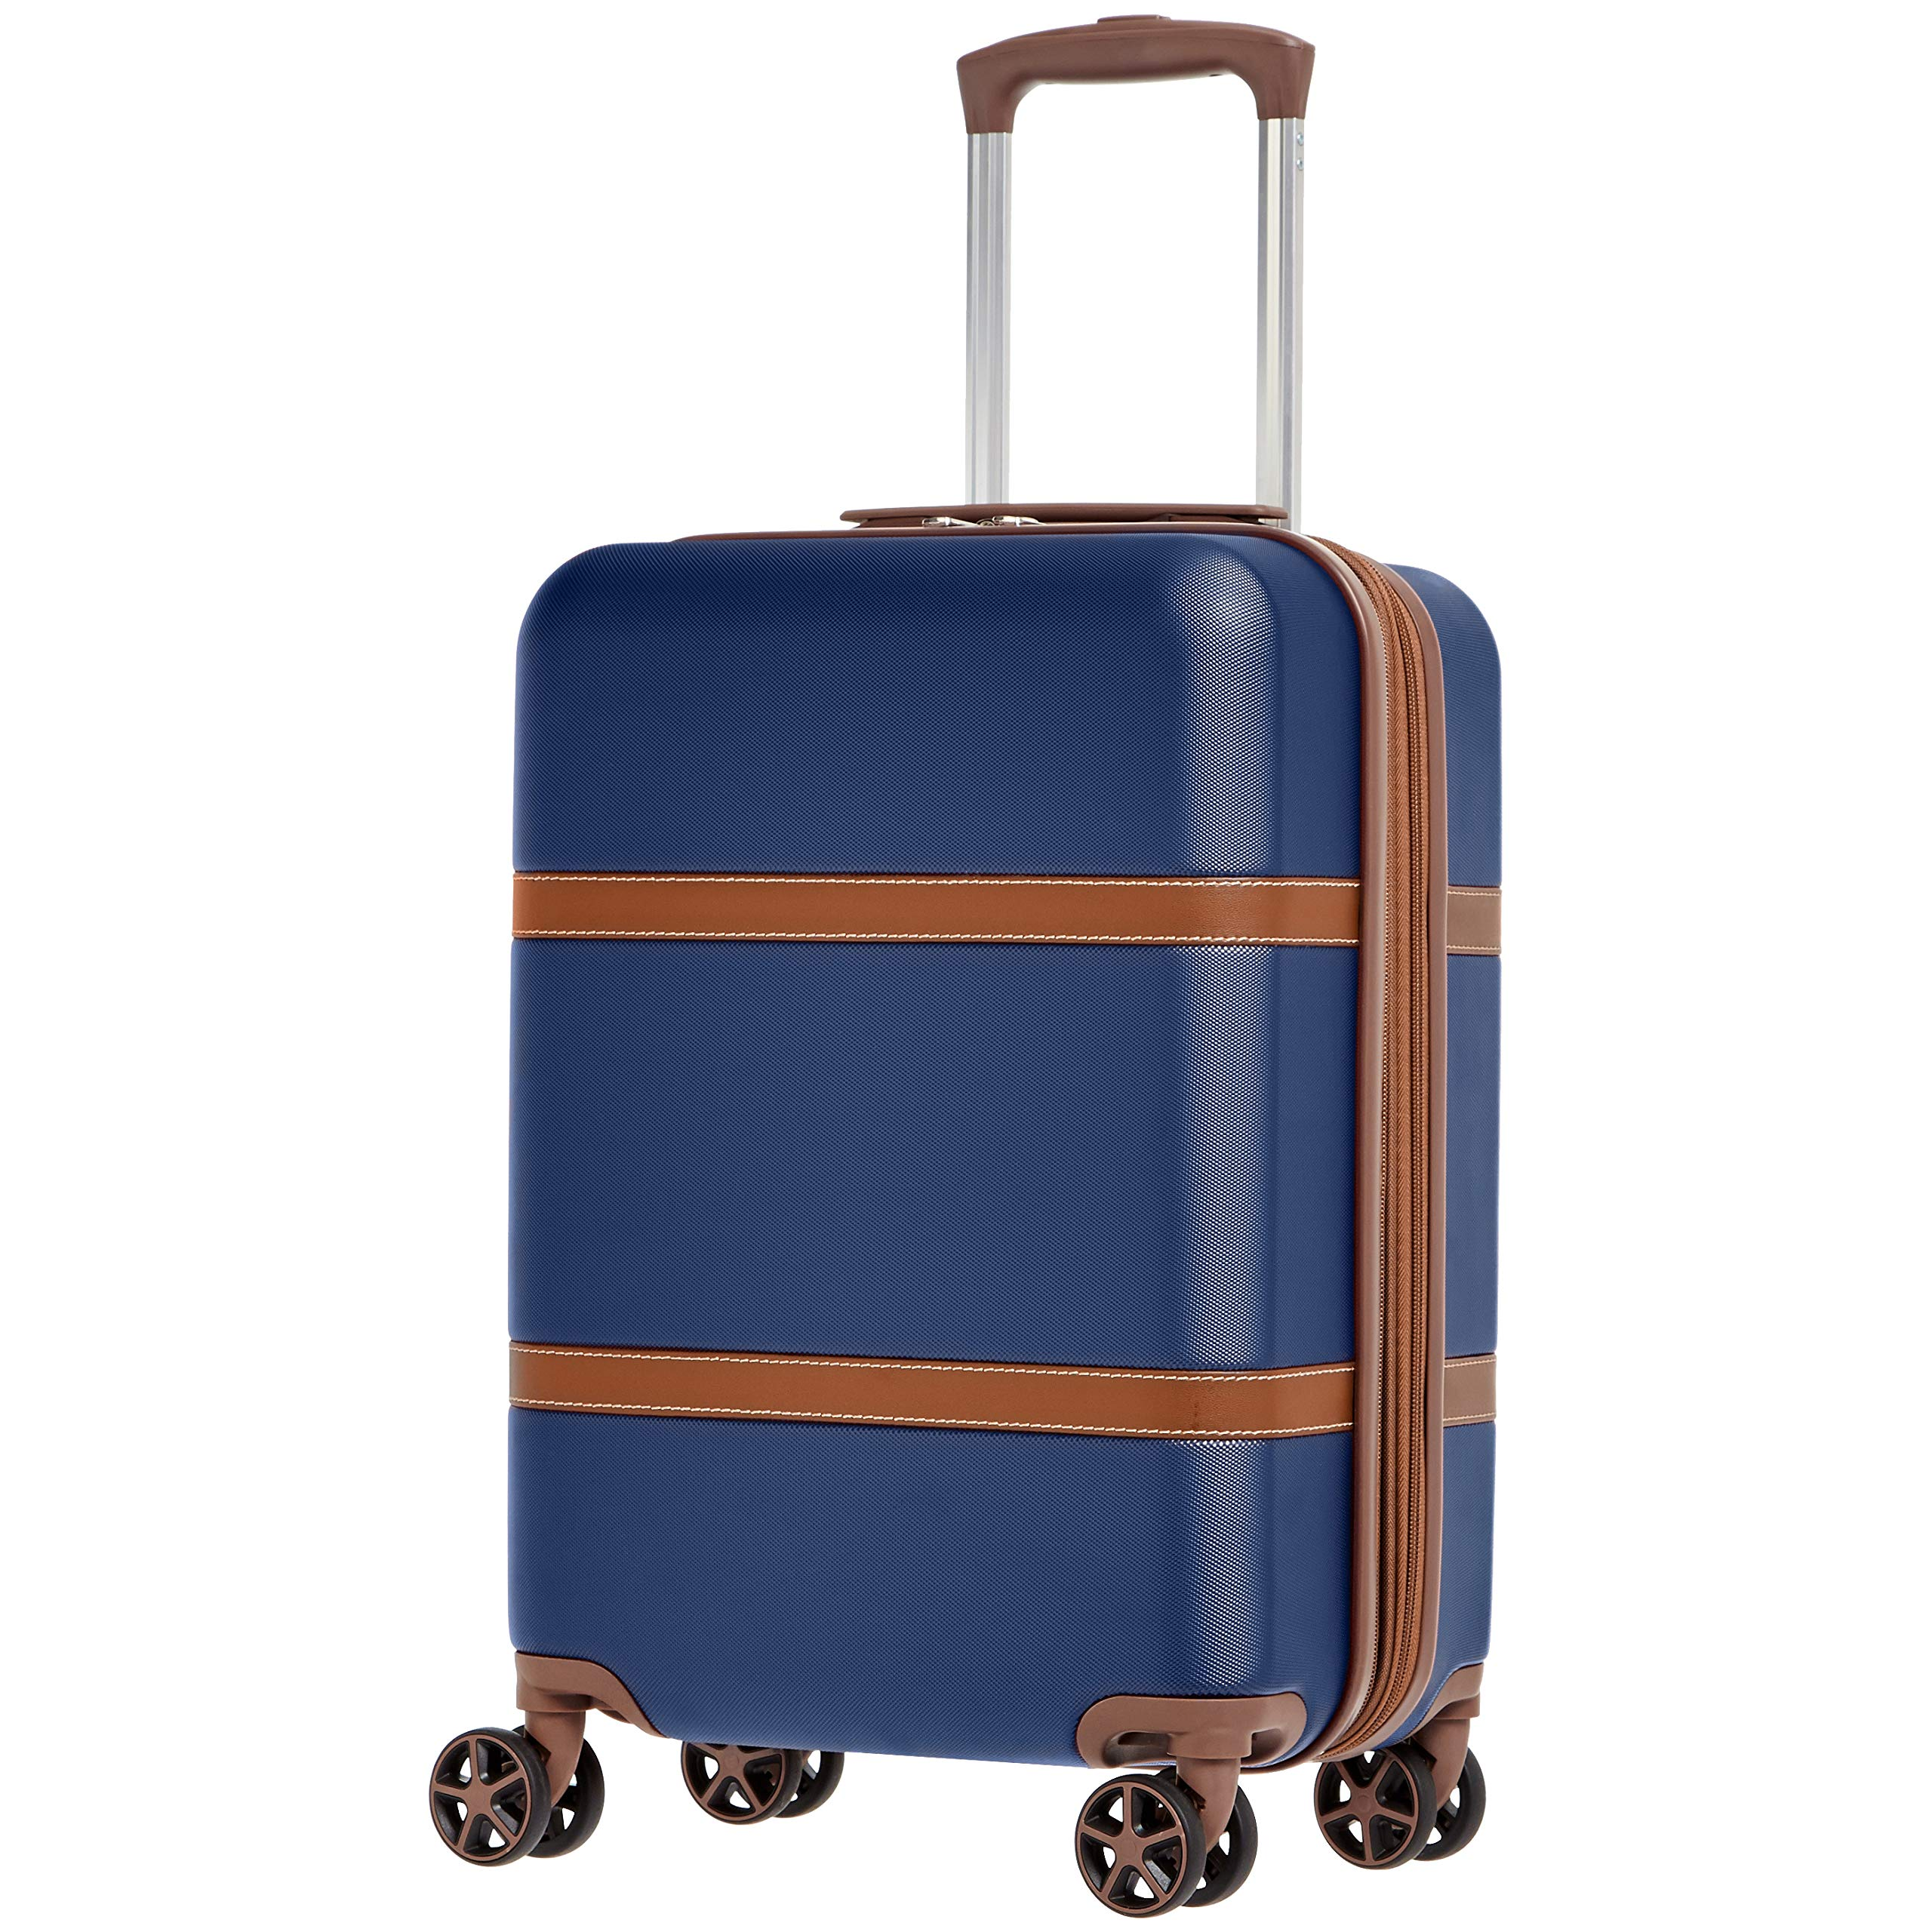 Vienna Carry-On Spinner Suitcase Luggage - Expandable with Wheels - 21.6 Inch, Blue